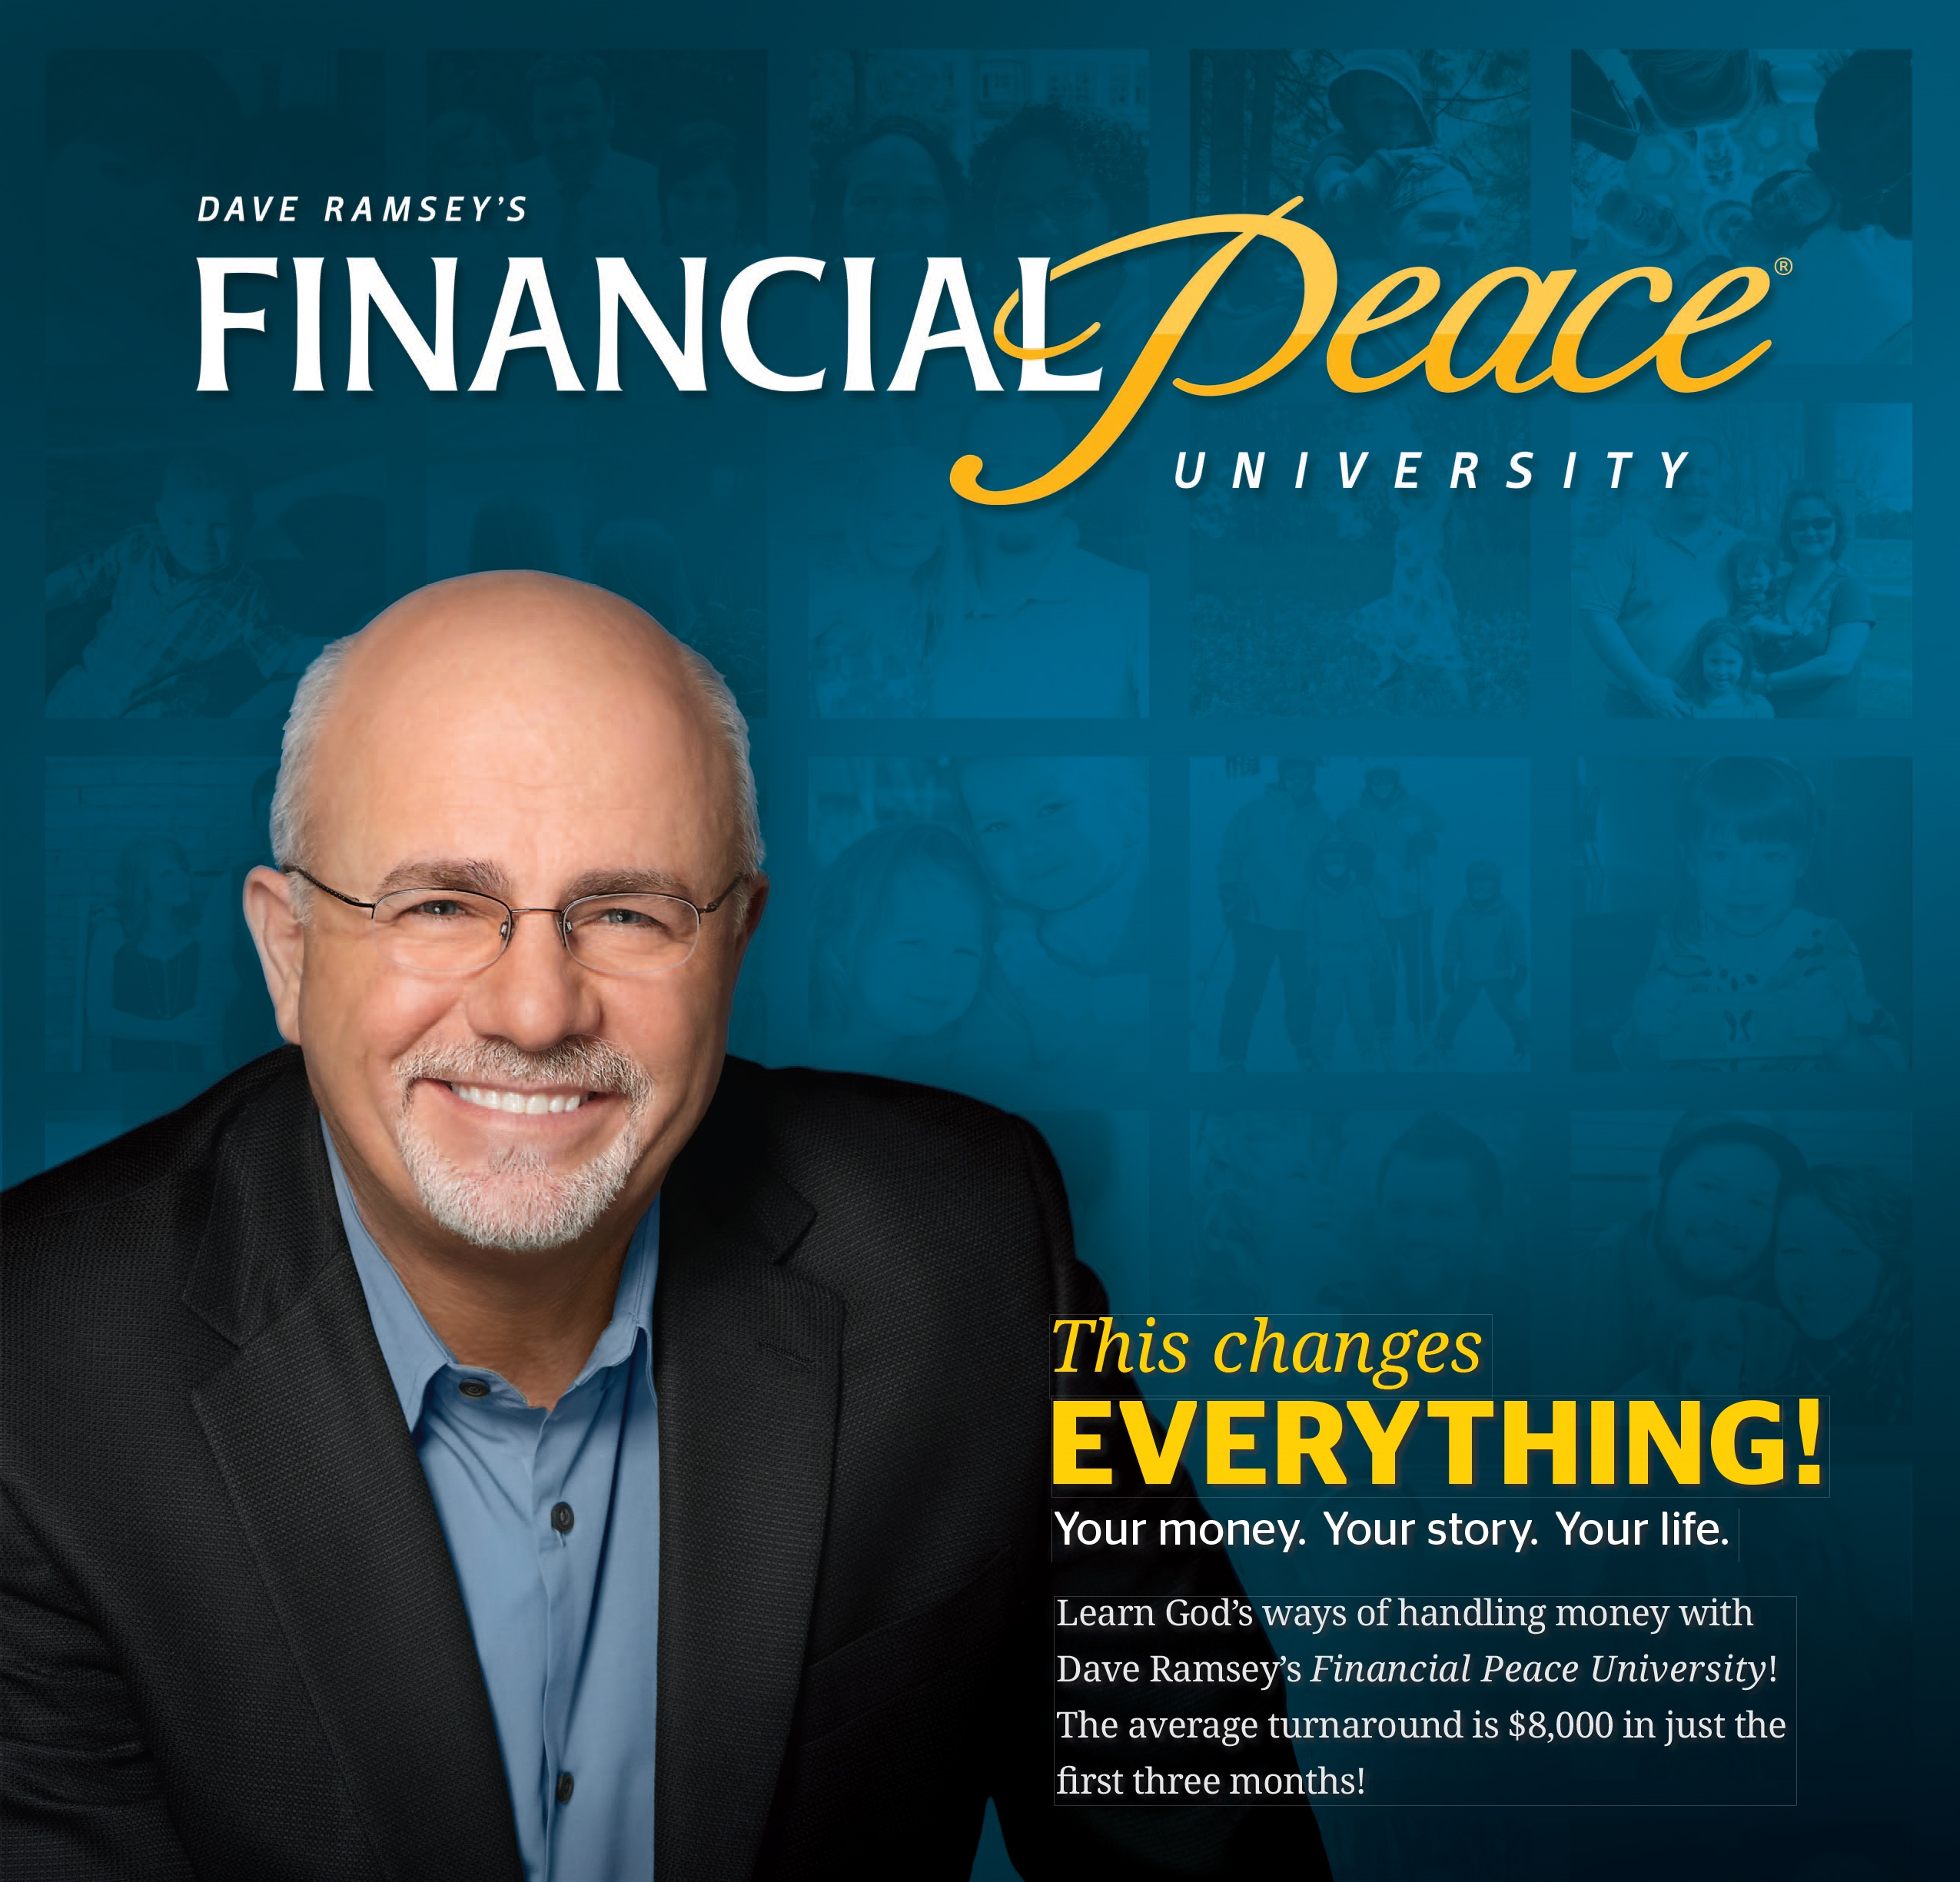 Dave ramseys financial peace university greater memphis series dave ramseys financial peace university greater memphis series 17 locations malvernweather Images